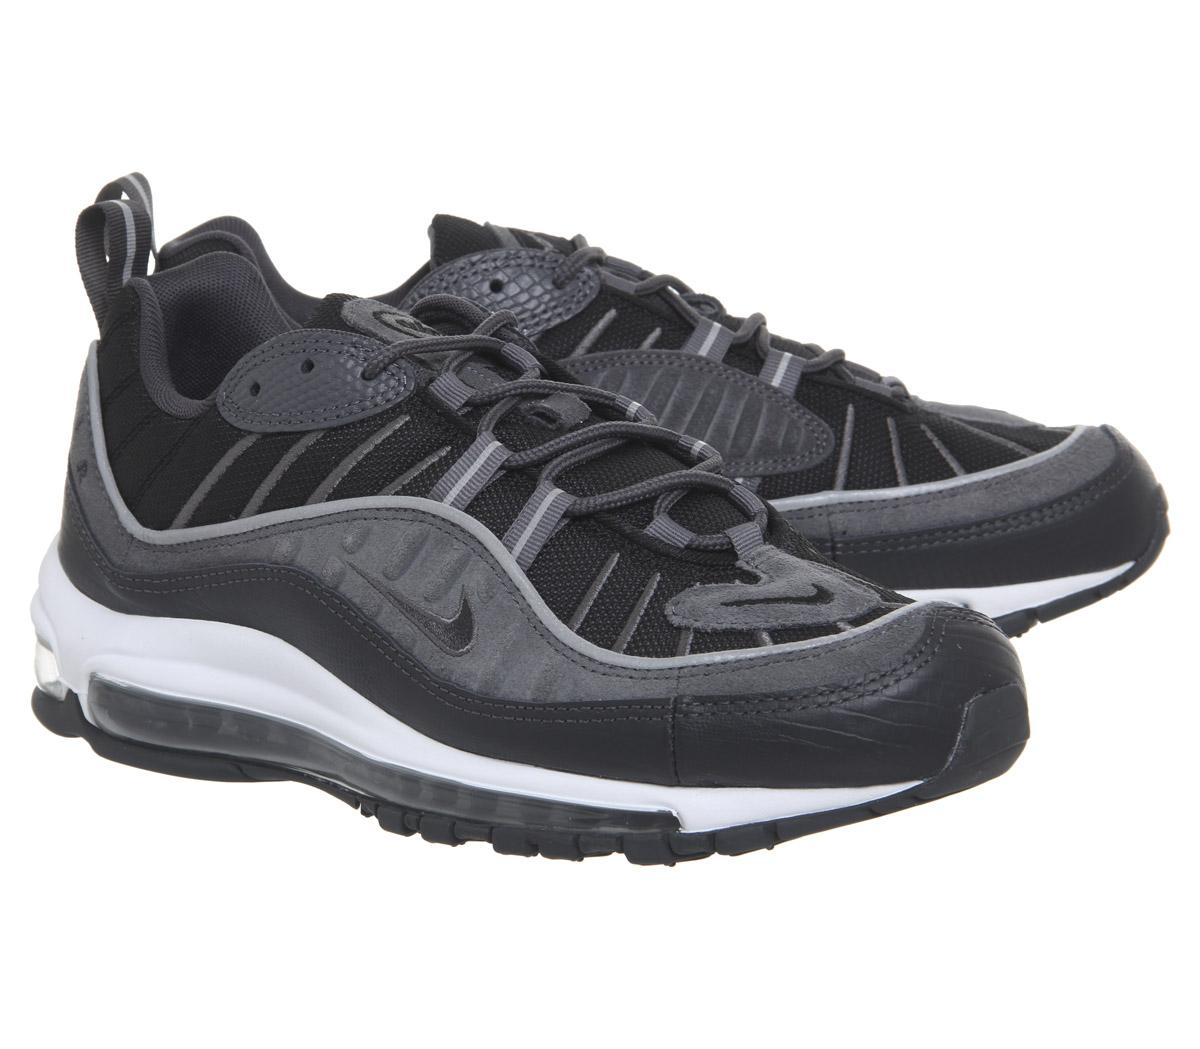 release date 7bb95 ab653 Nike Air Max 98 Trainers in Gray for Men - Lyst